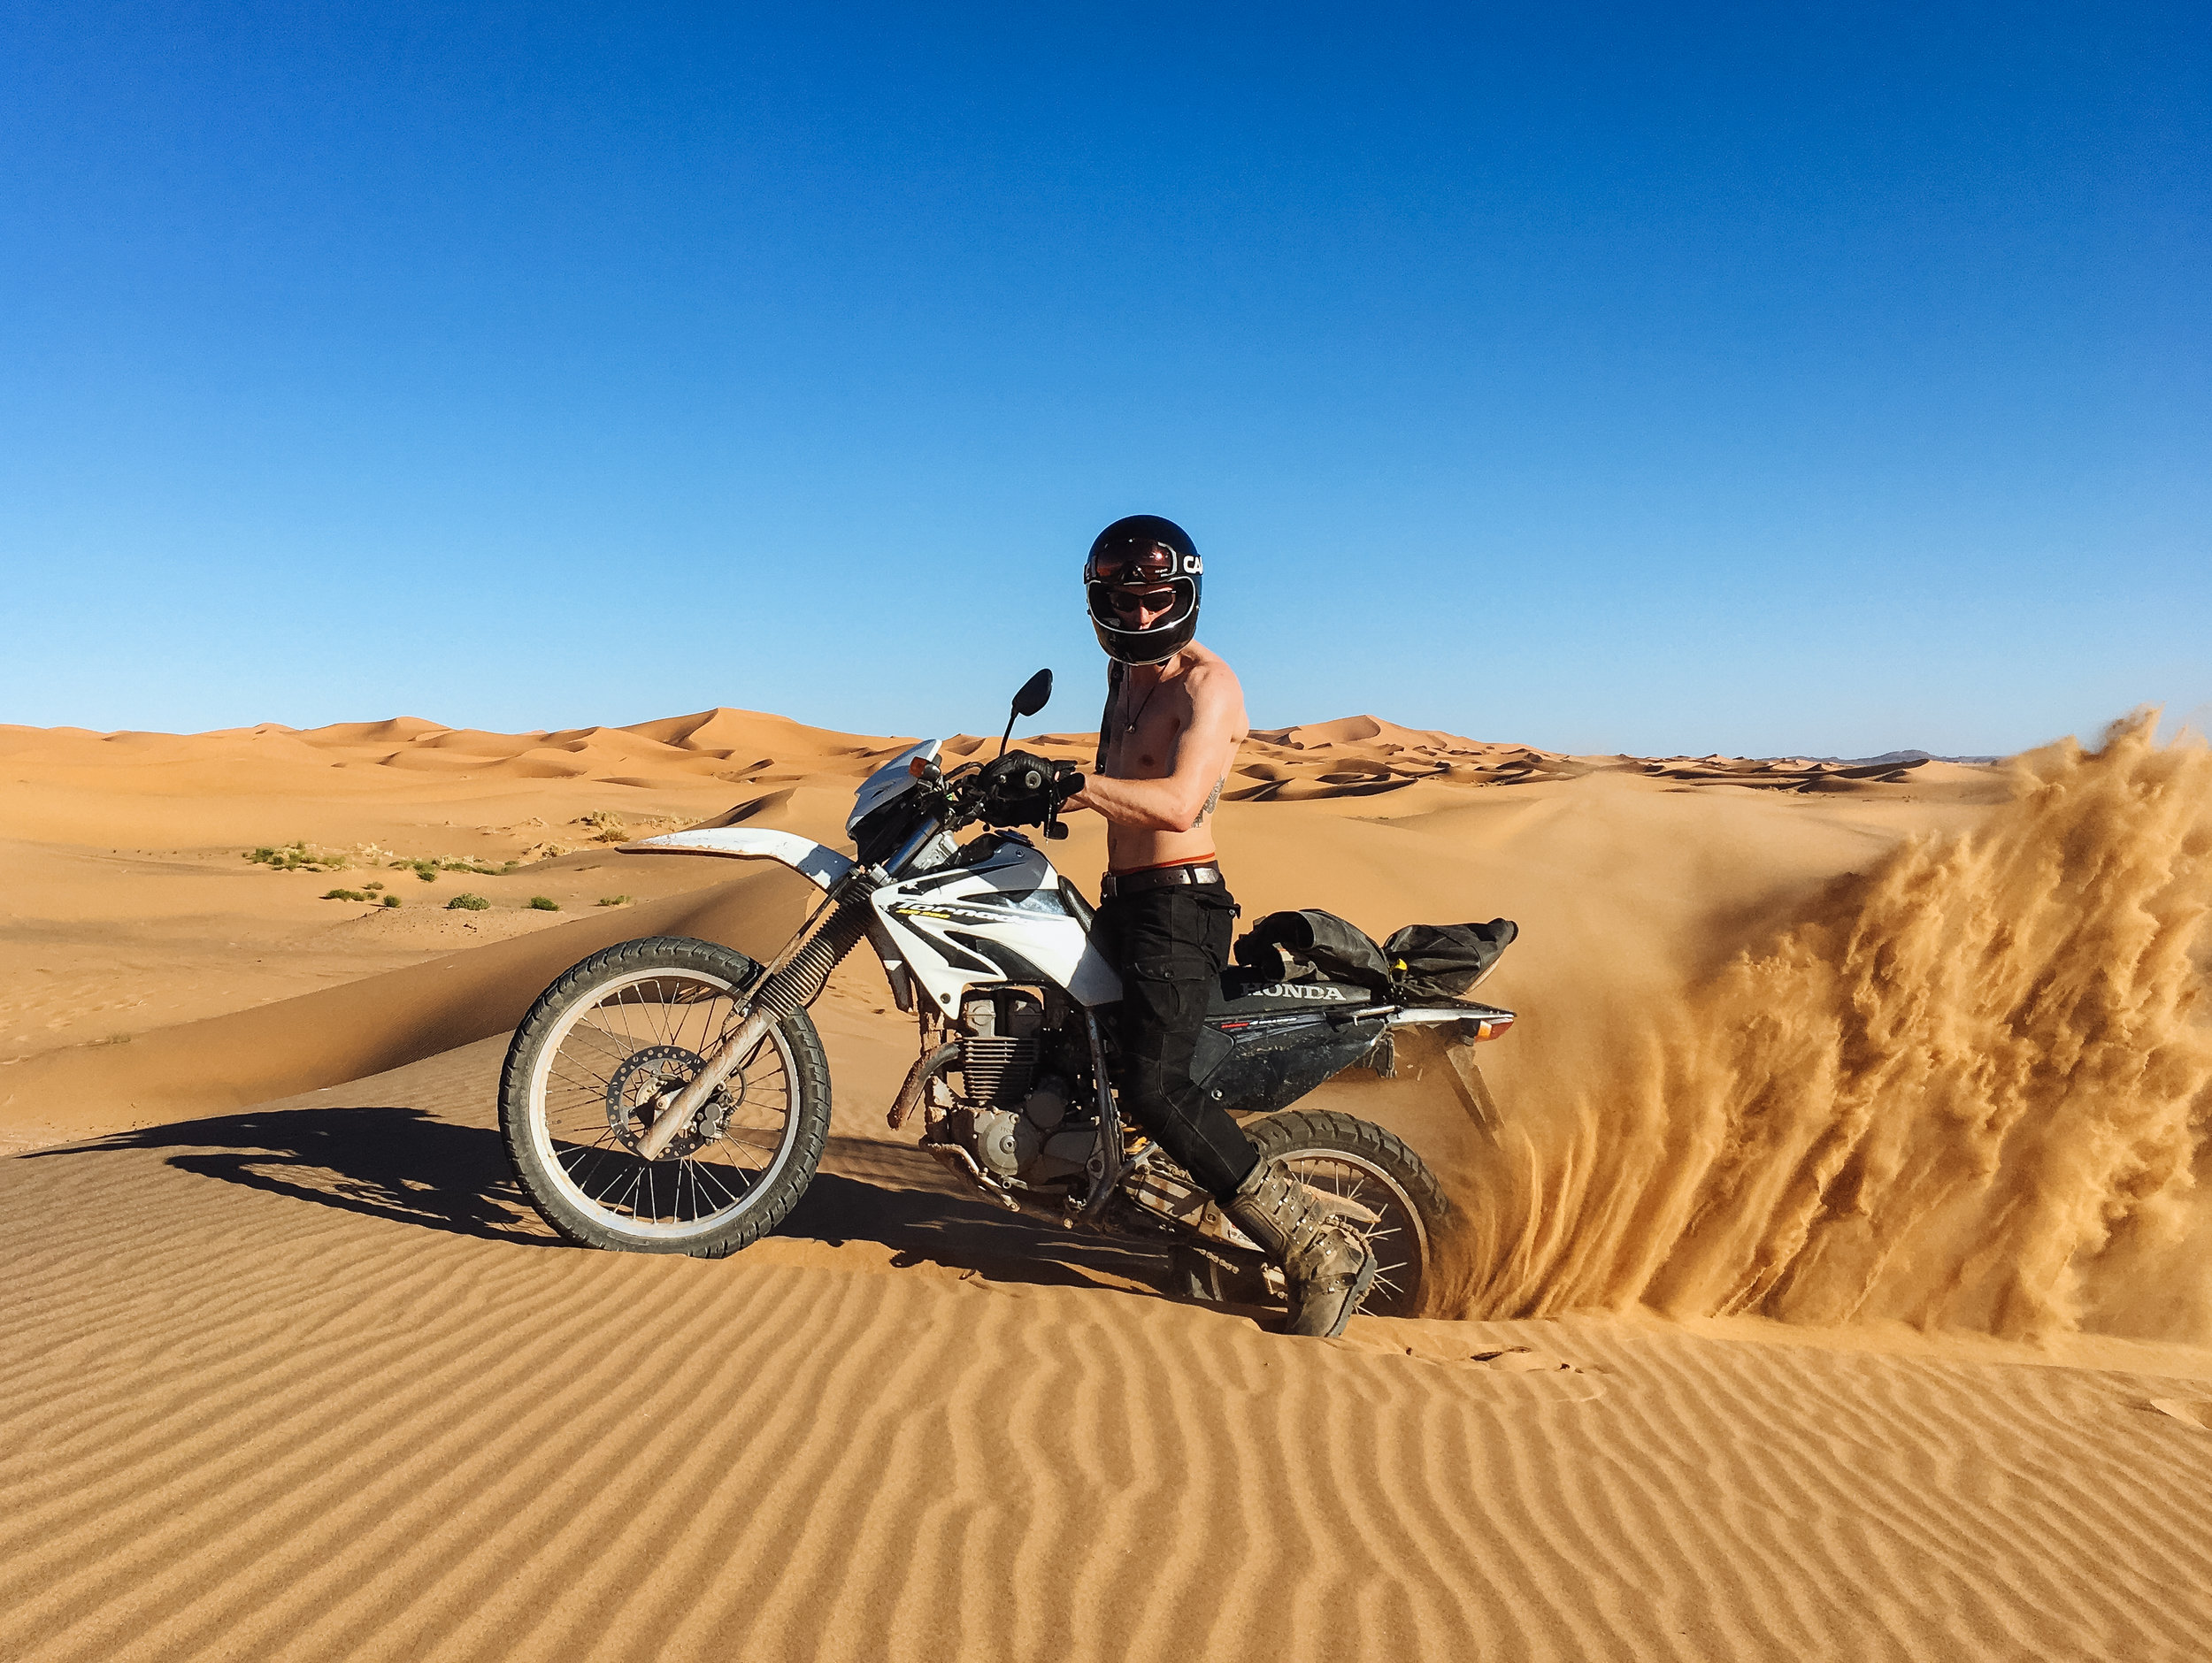 Putting the XR250s to the test in the dunes of the Sahara